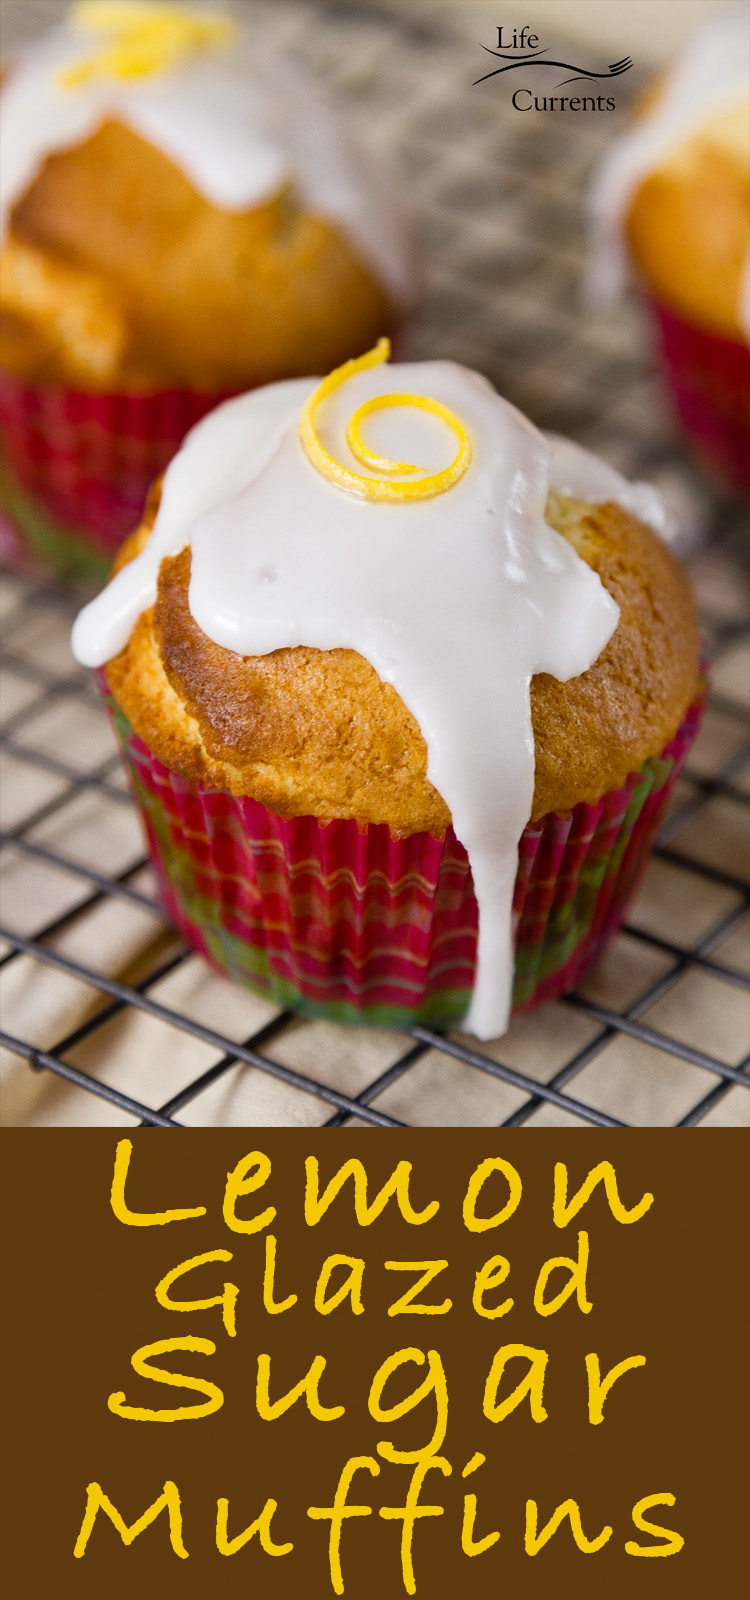 Lemon Glazed Sugar Muffins - Tangy sweet lemon glaze tops a nice dense and not too sweet vanilla cake muffin